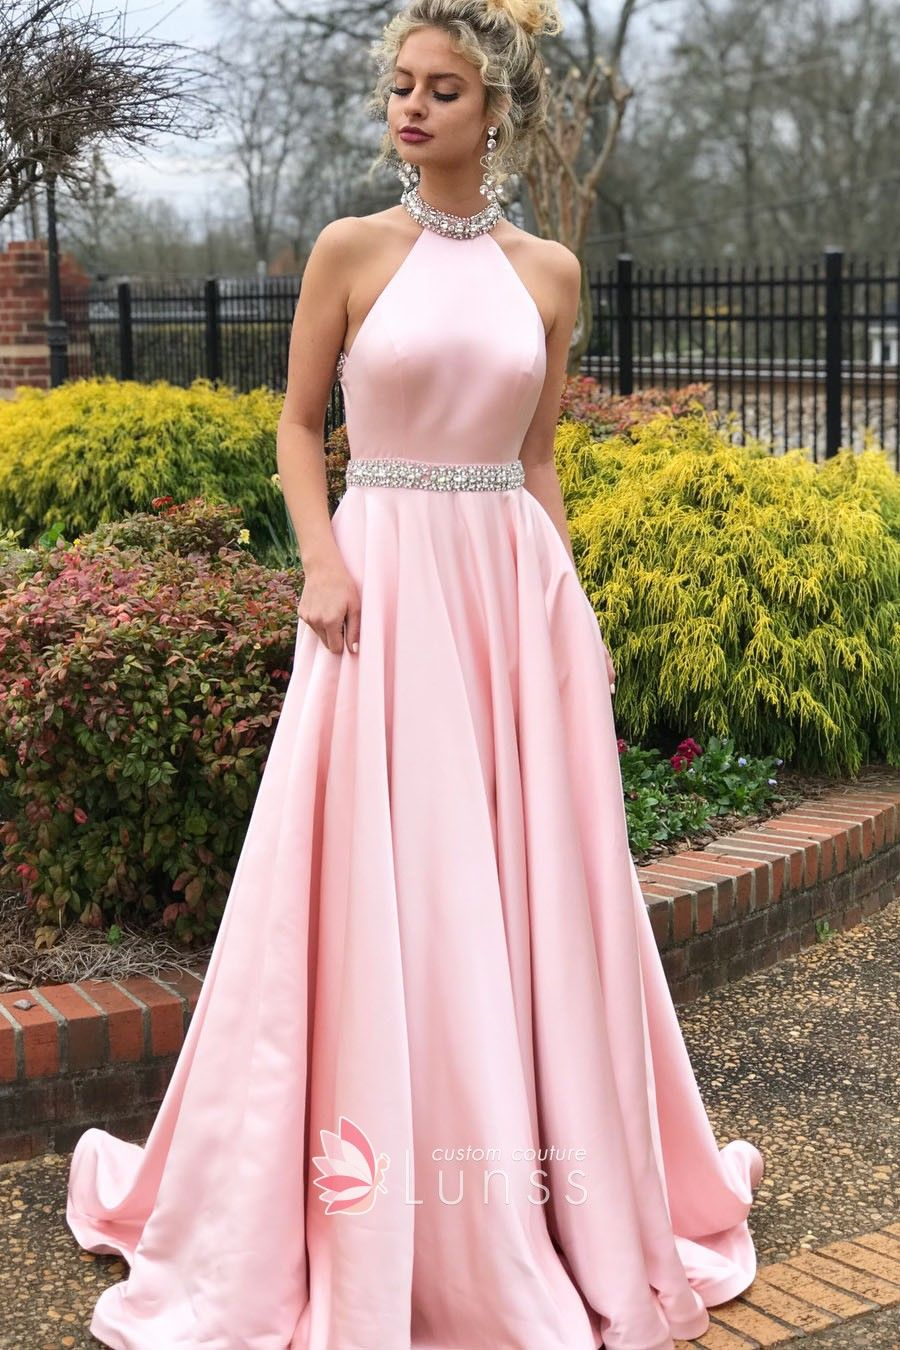 1cb794f9ef324 ... Evening Party Gowns vestidos de fiesta Long Graduation Prom Dresses for  only 89 USD. light pink satin beaded halter floor length puffy prom dress